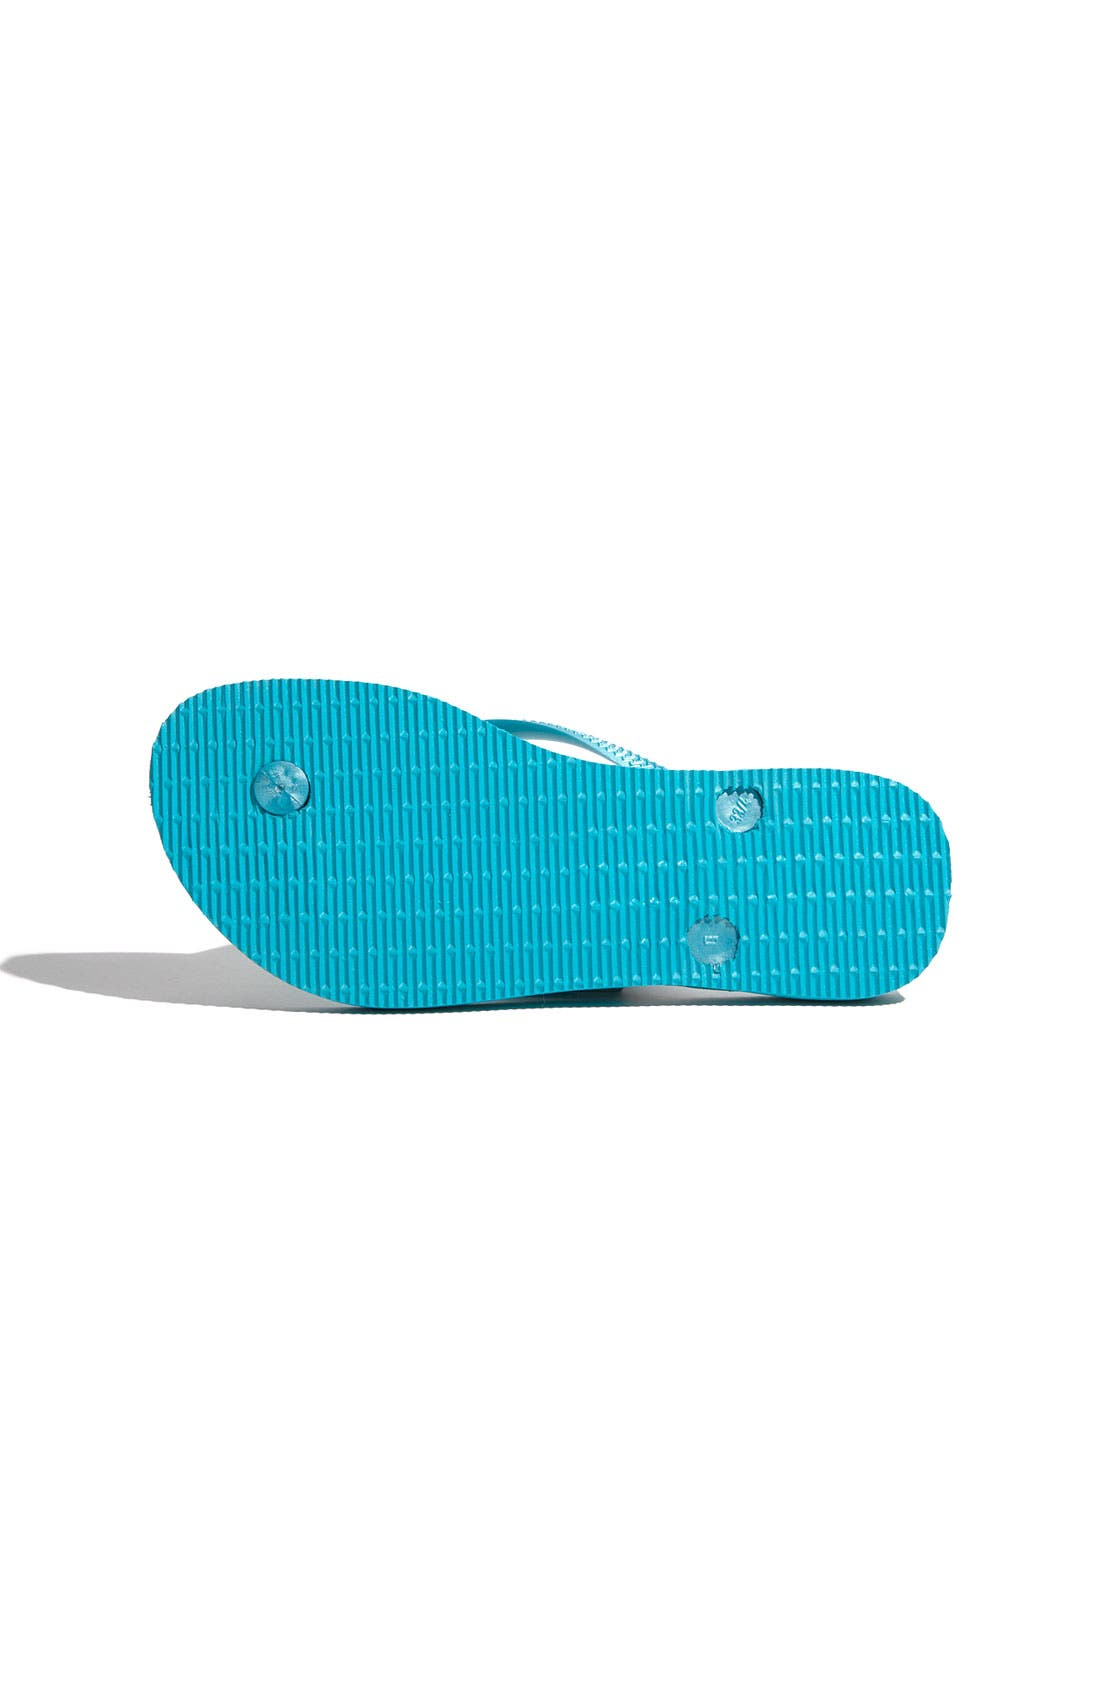 'Slim' Flip Flop,                             Alternate thumbnail 39, color,